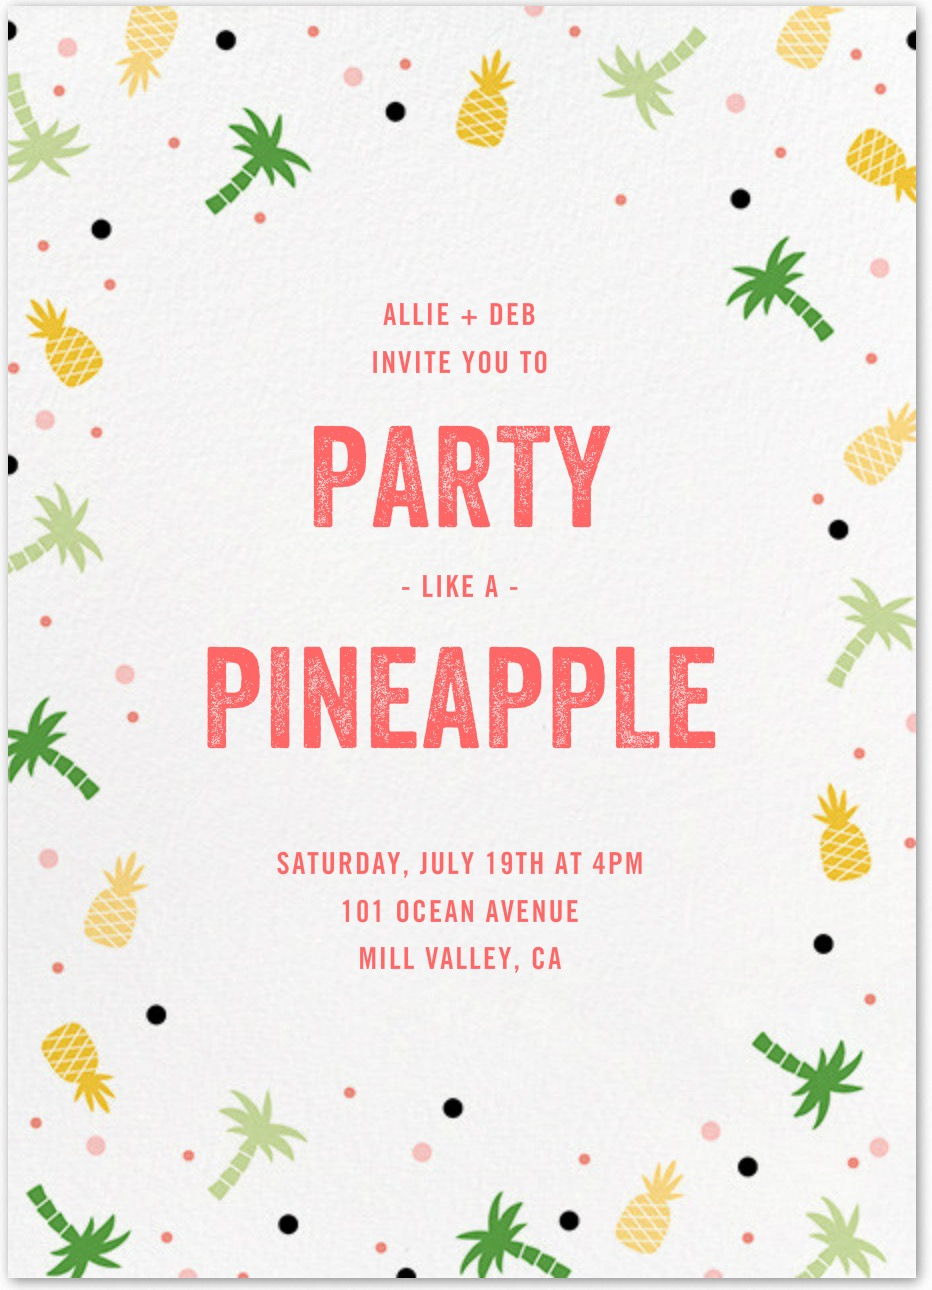 Get Lei'd at a Luau evite from Paperless Post | Table + Dine